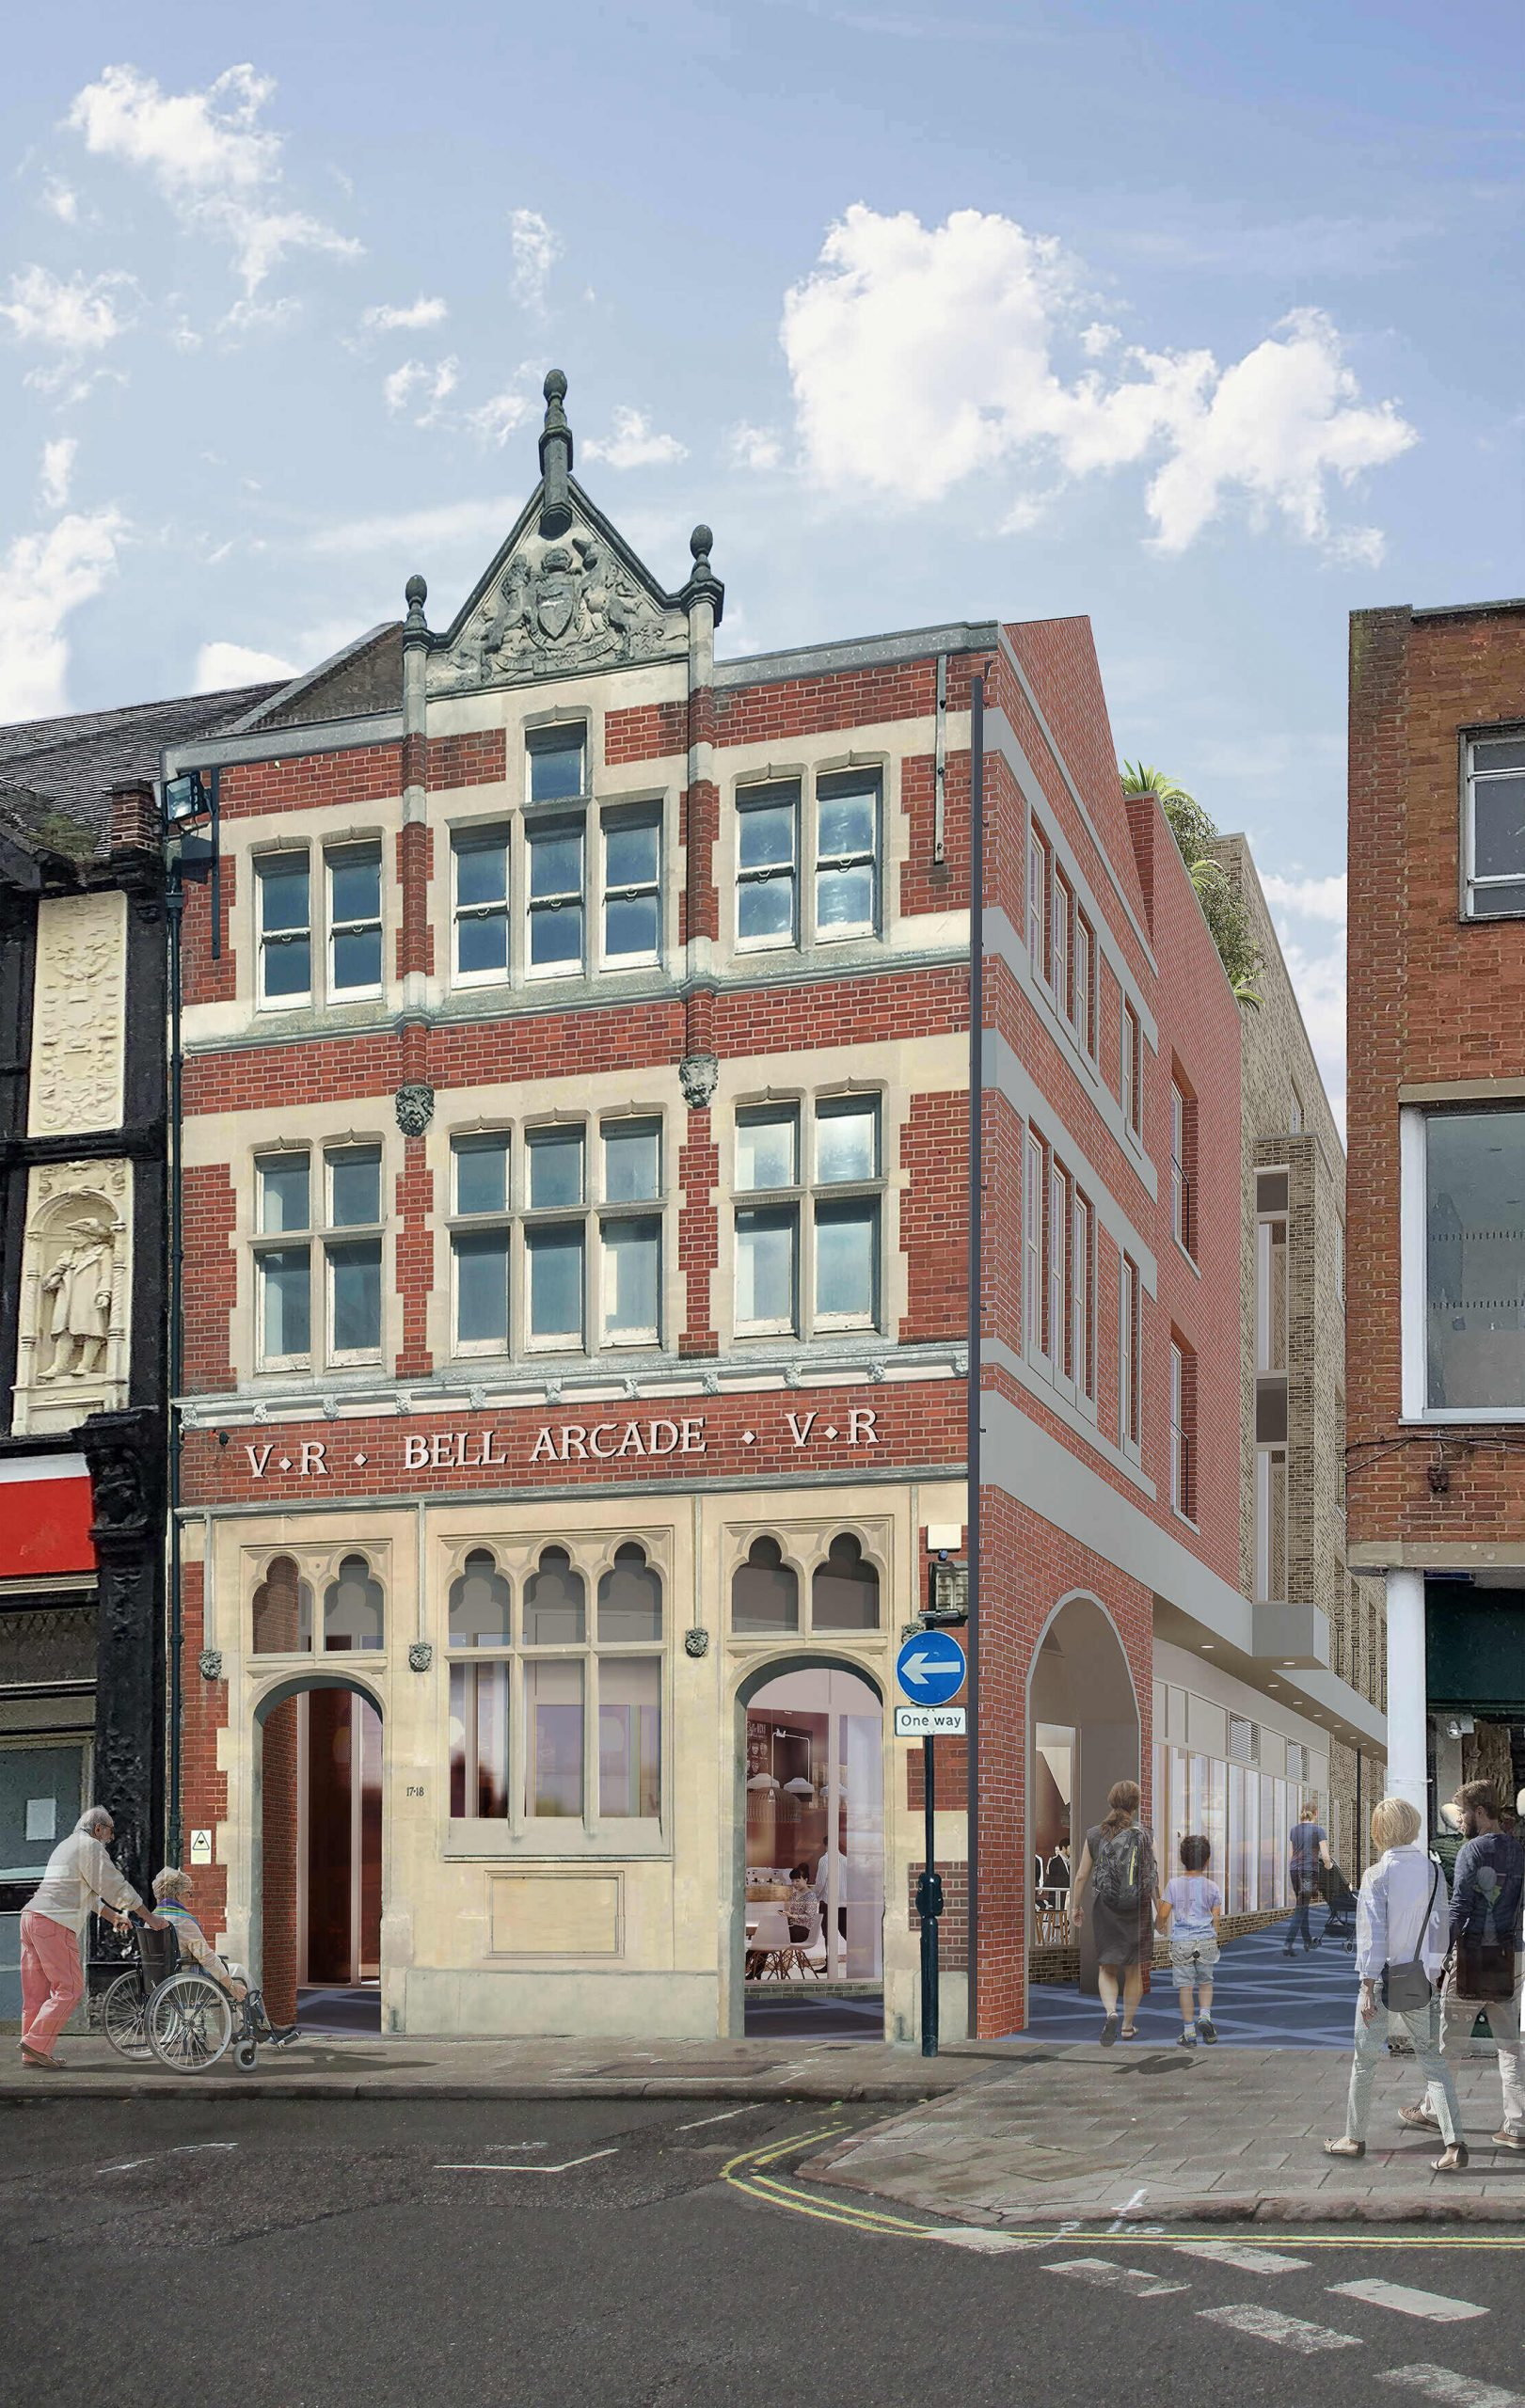 HISTORIC POST OFFICE REDEVELOPMENT STARTS ON SITE